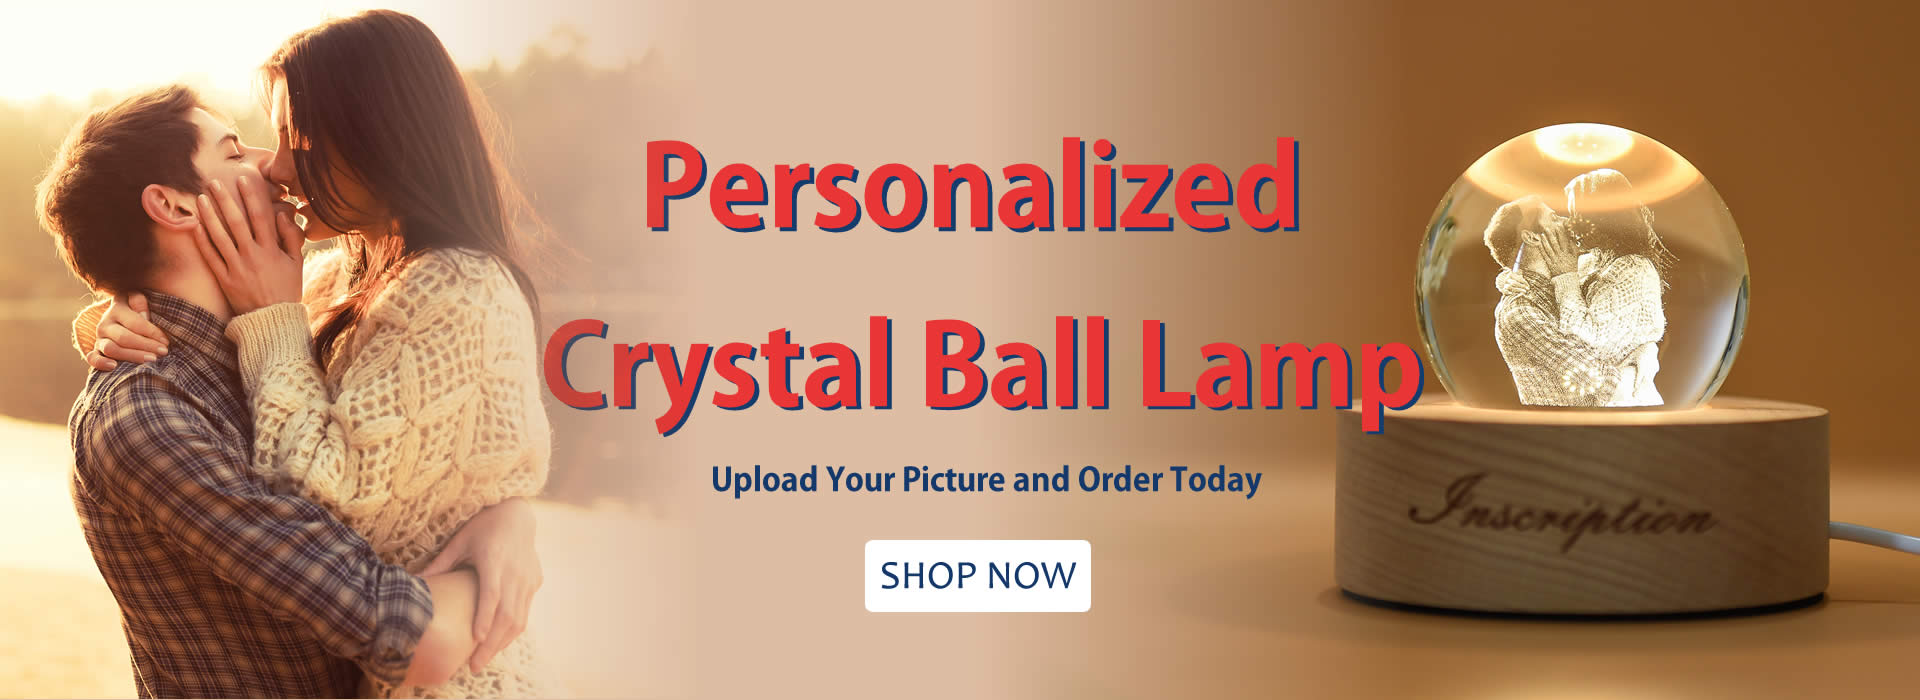 Personalized Crystal Ball Lamp